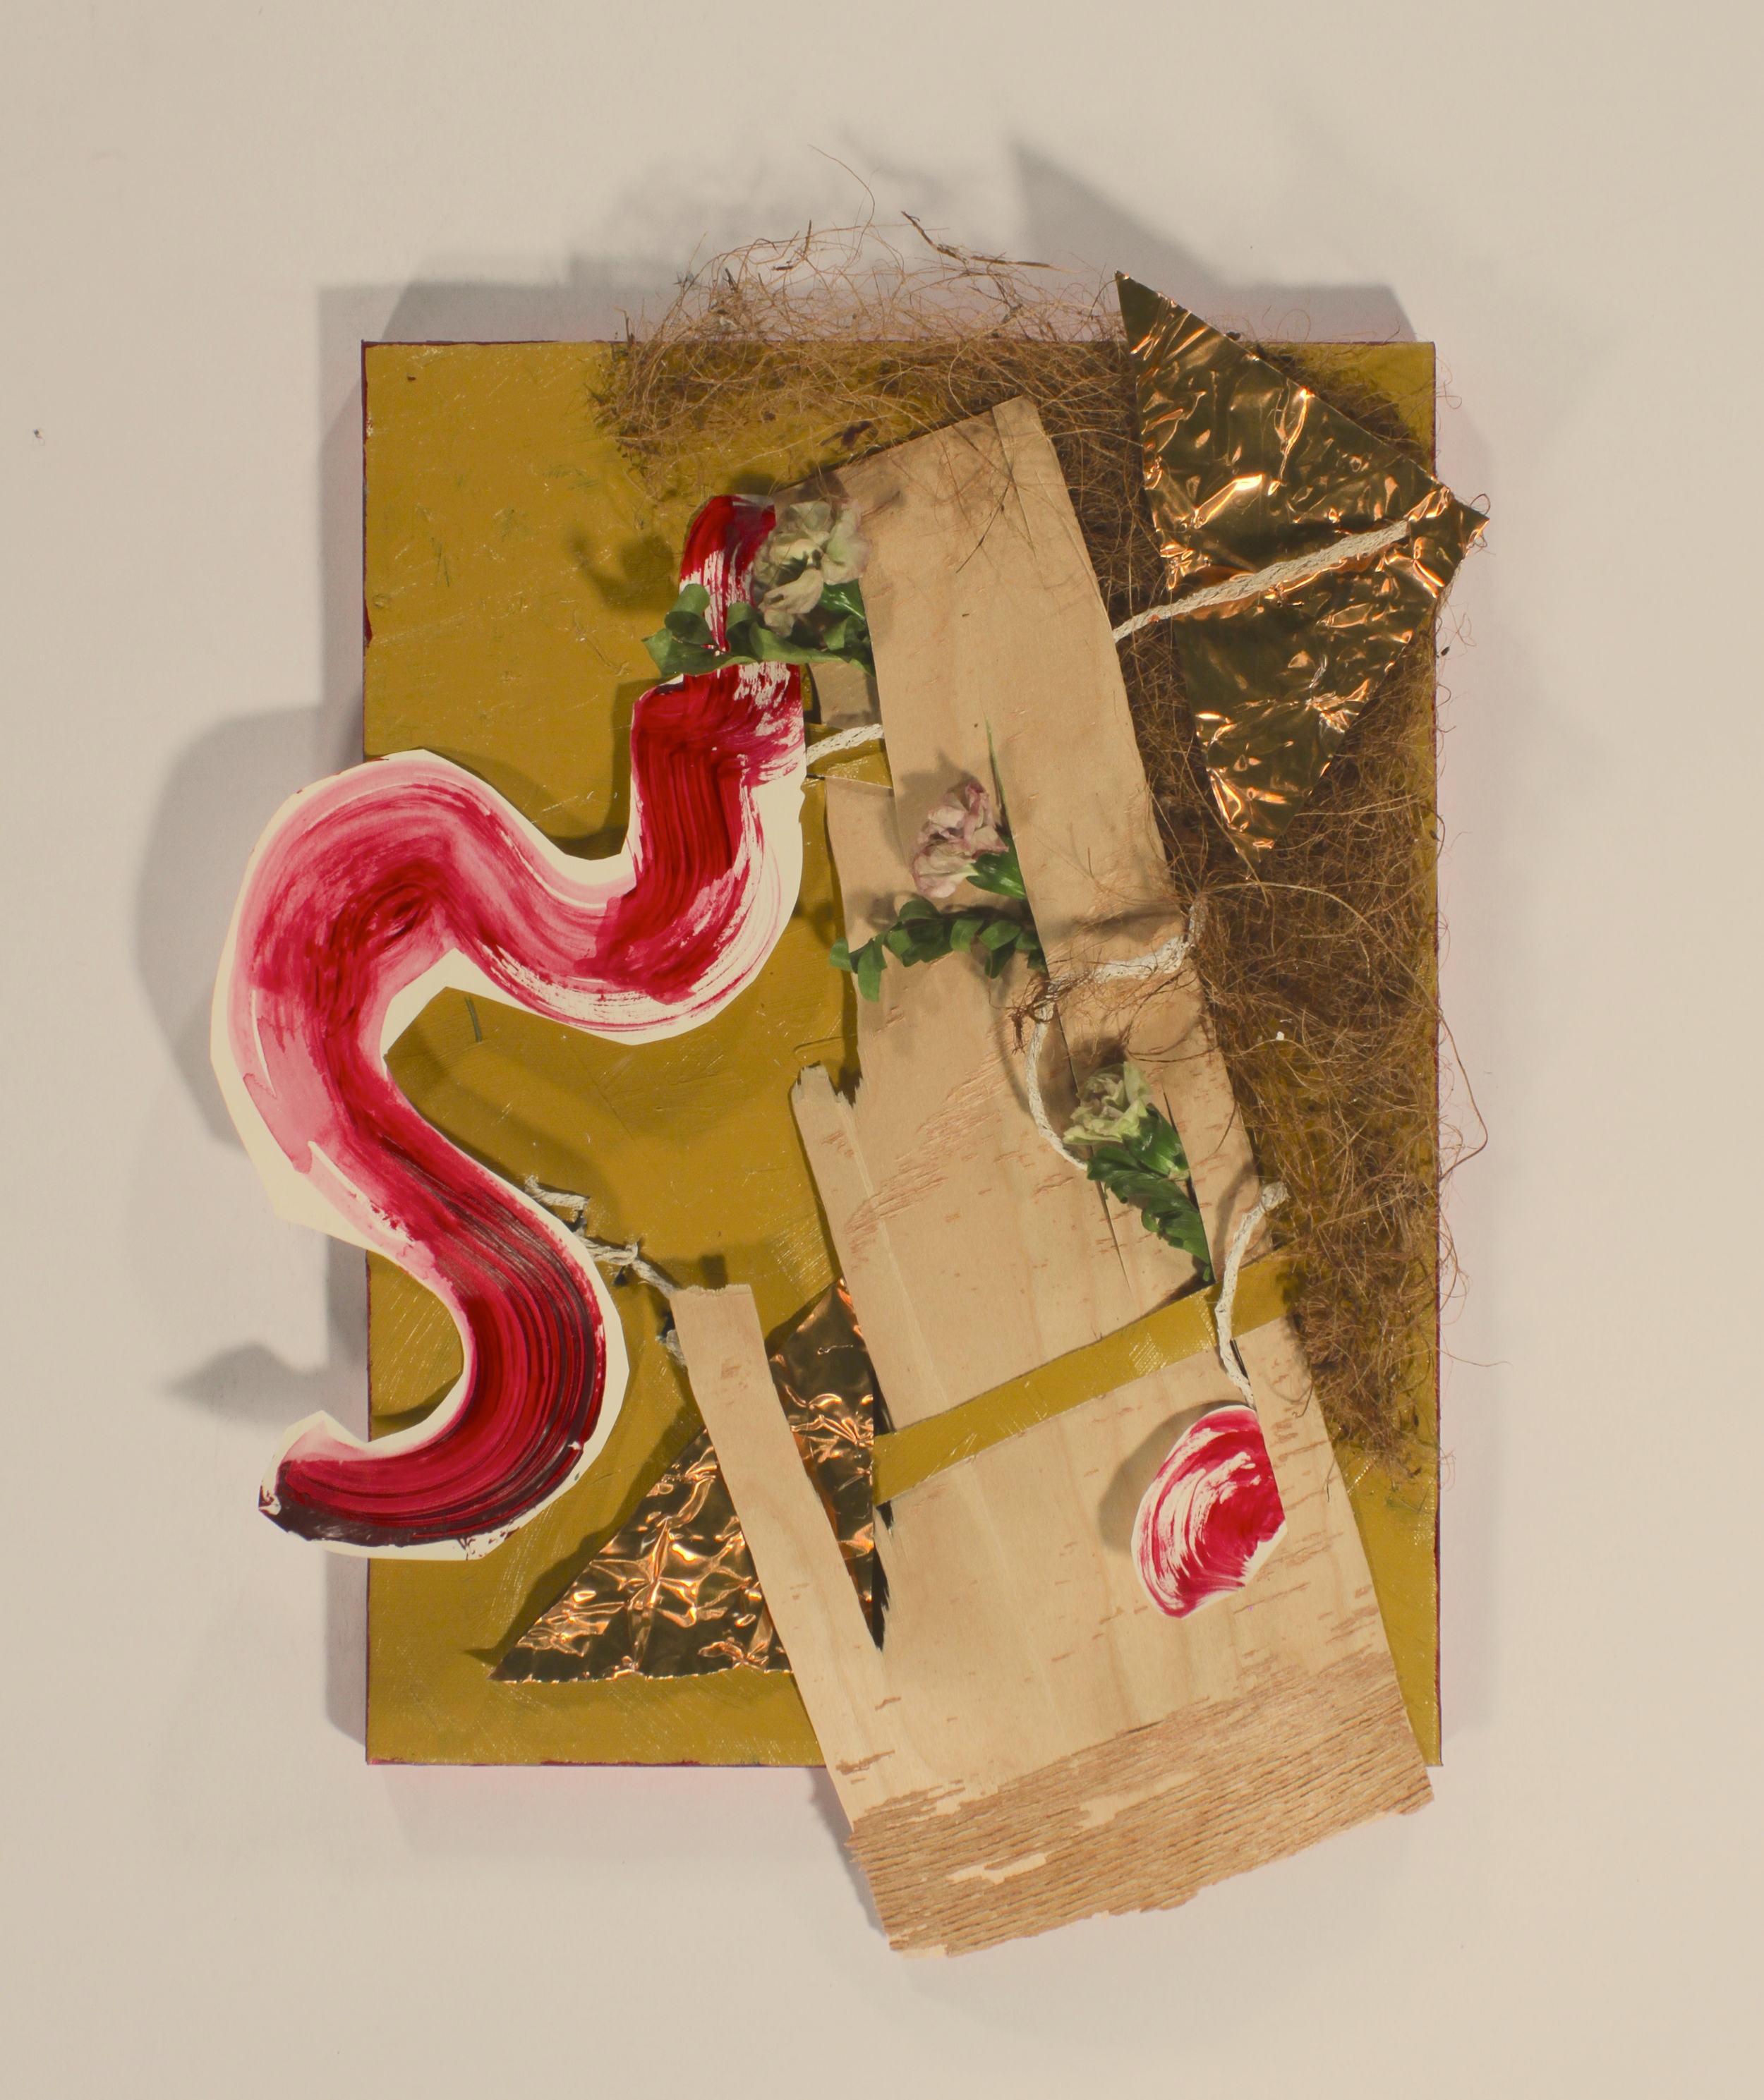 When Love Takes Break- Semi Pleasant  2014, stretched canvas, paper, acrylic, wood, flowers, copper, twine, plastic nest, 8in x 10in